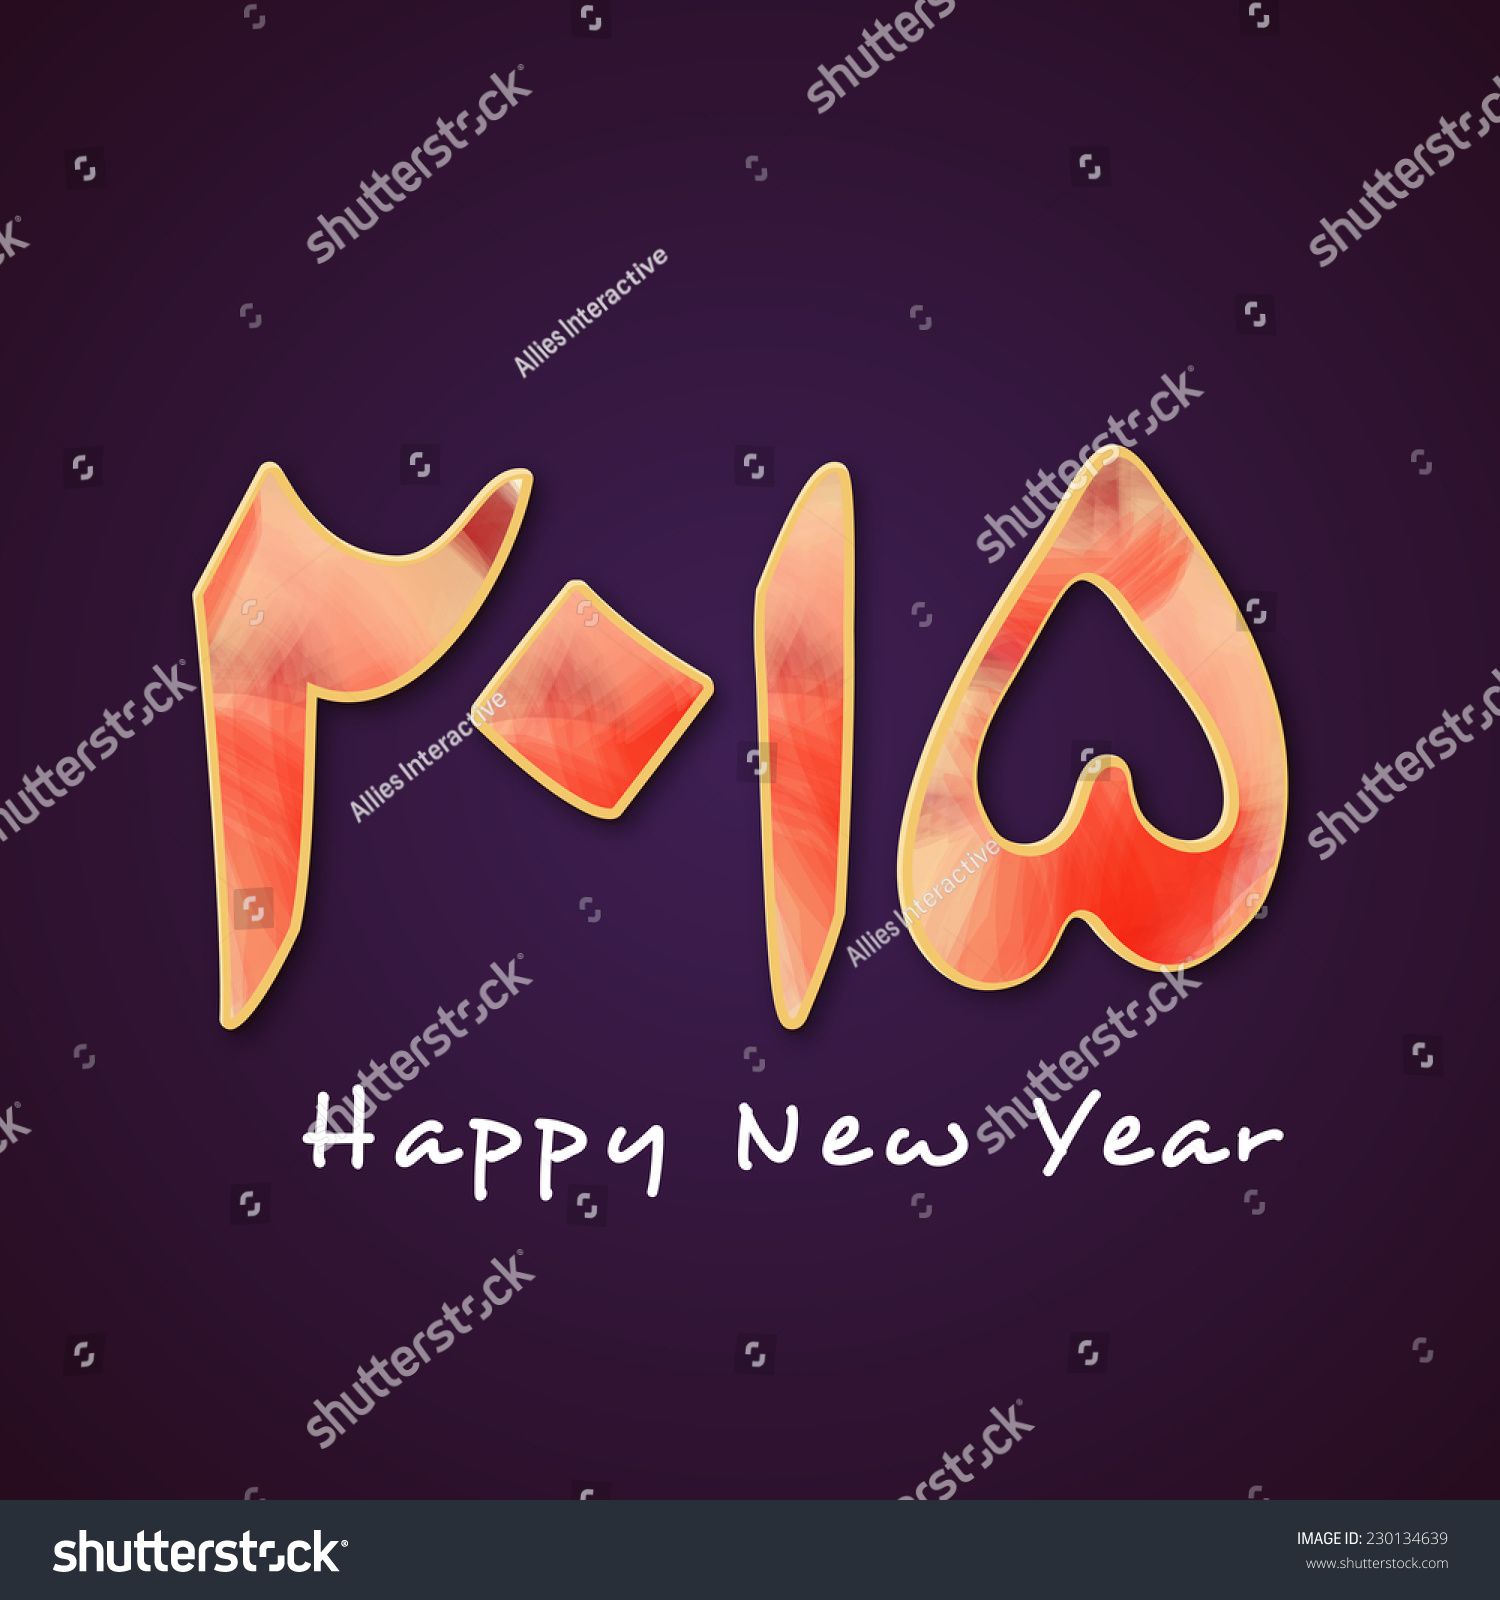 Happy new year greeting card design stock vector royalty free happy new year greeting card design with urdu calligraphy of text 2015 on shiny purple background m4hsunfo